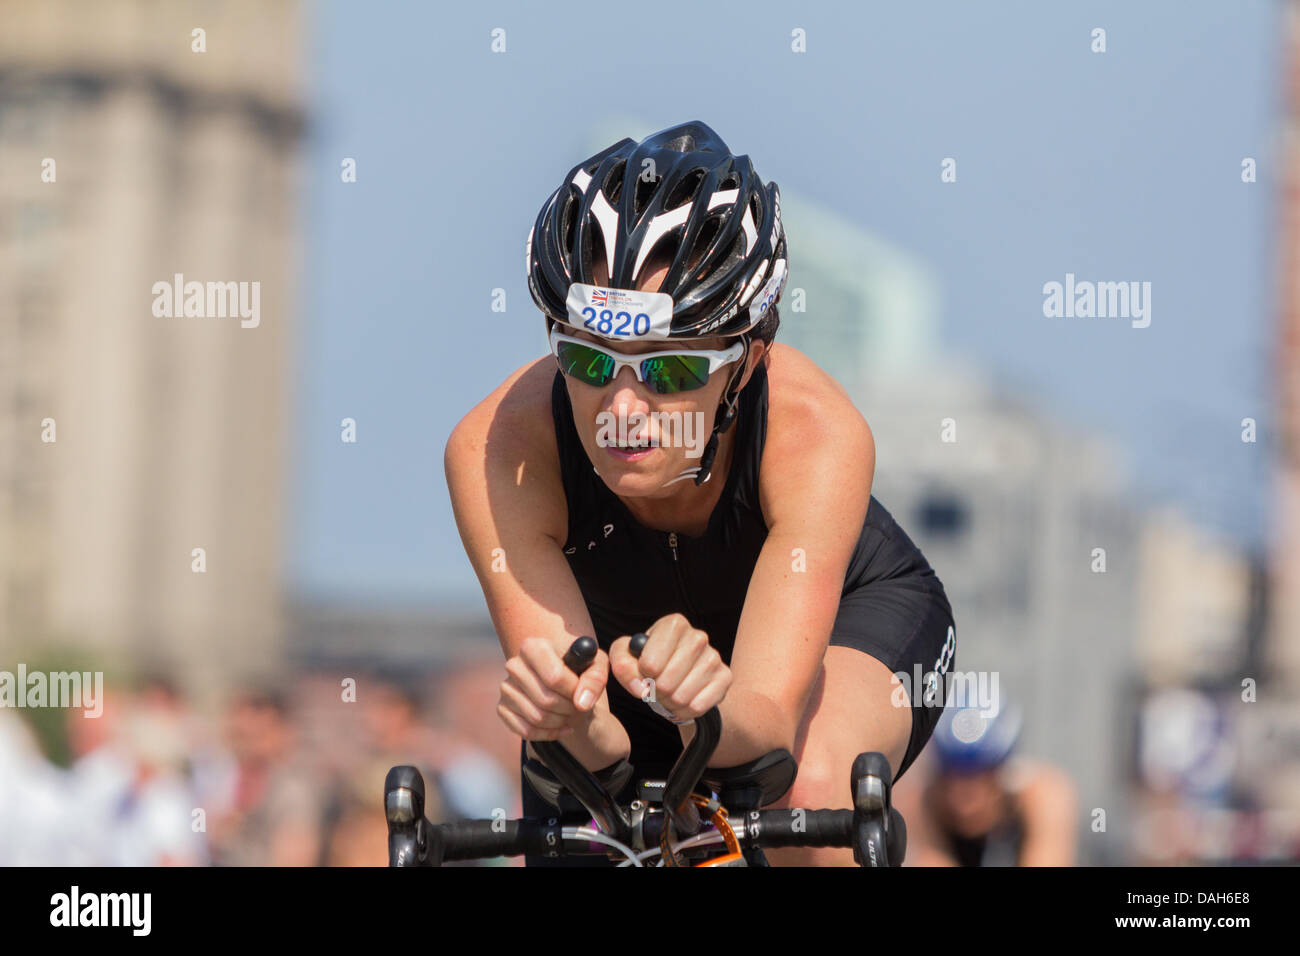 Liverpool, UK. 13th July 2013. Athletes take part in the Age-Group Standard Distance Triathlon Championships which - Stock Image